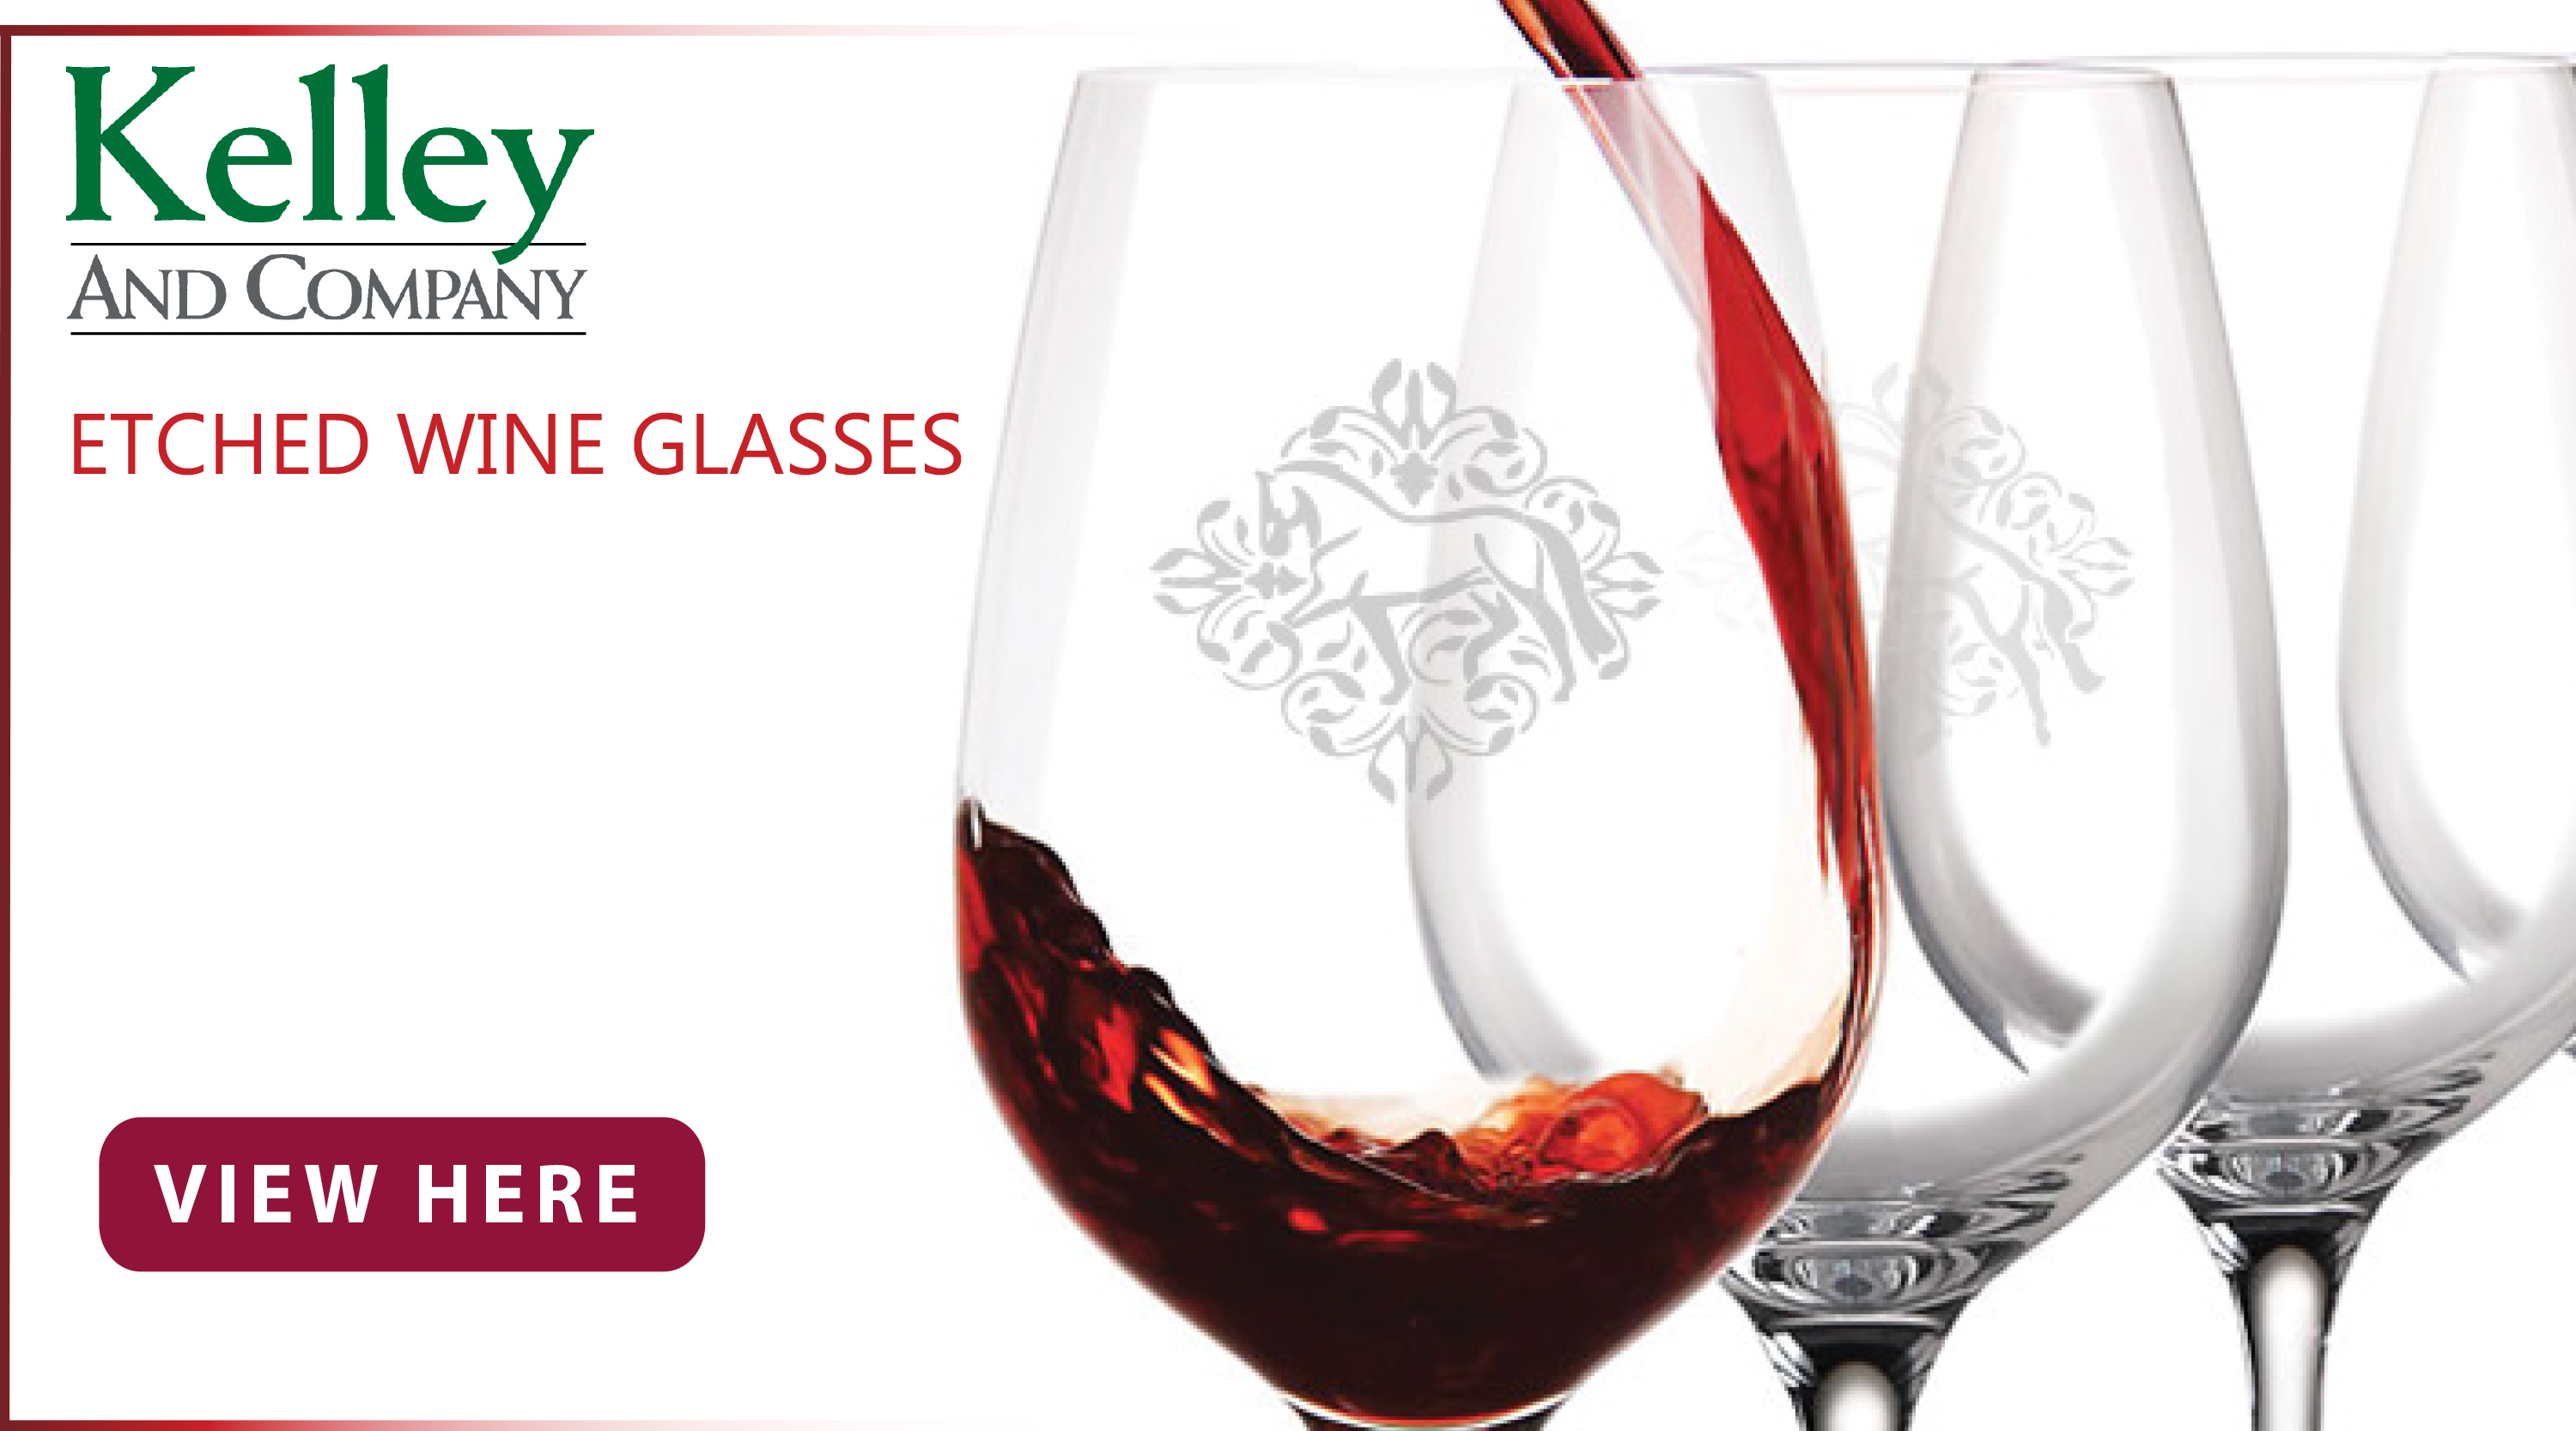 New at Jacks Inc. - Kelley and Co. Wine Glasses